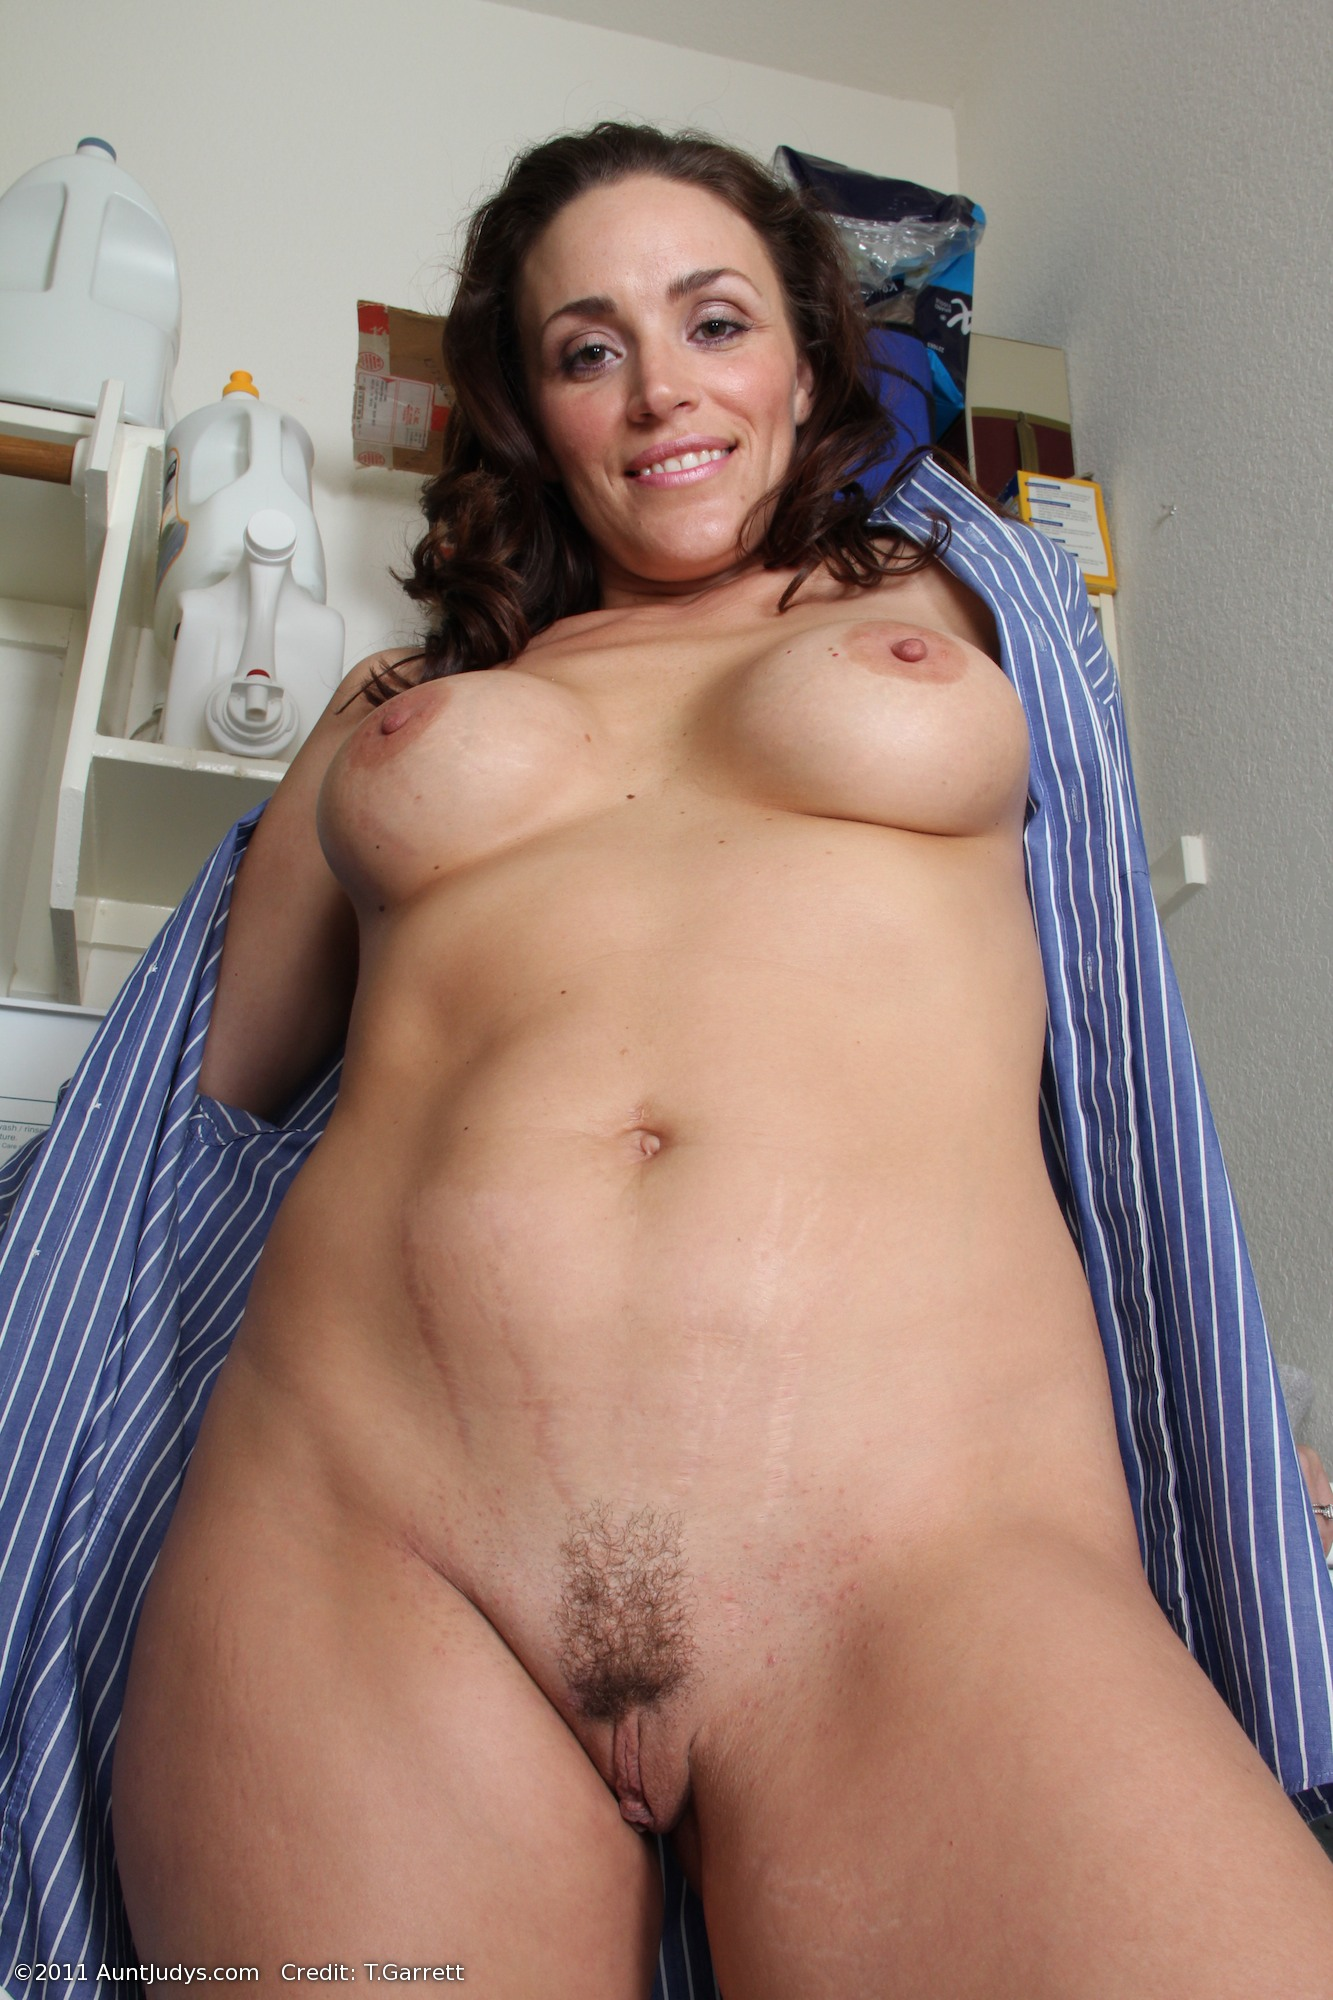 Hot mature mom pics